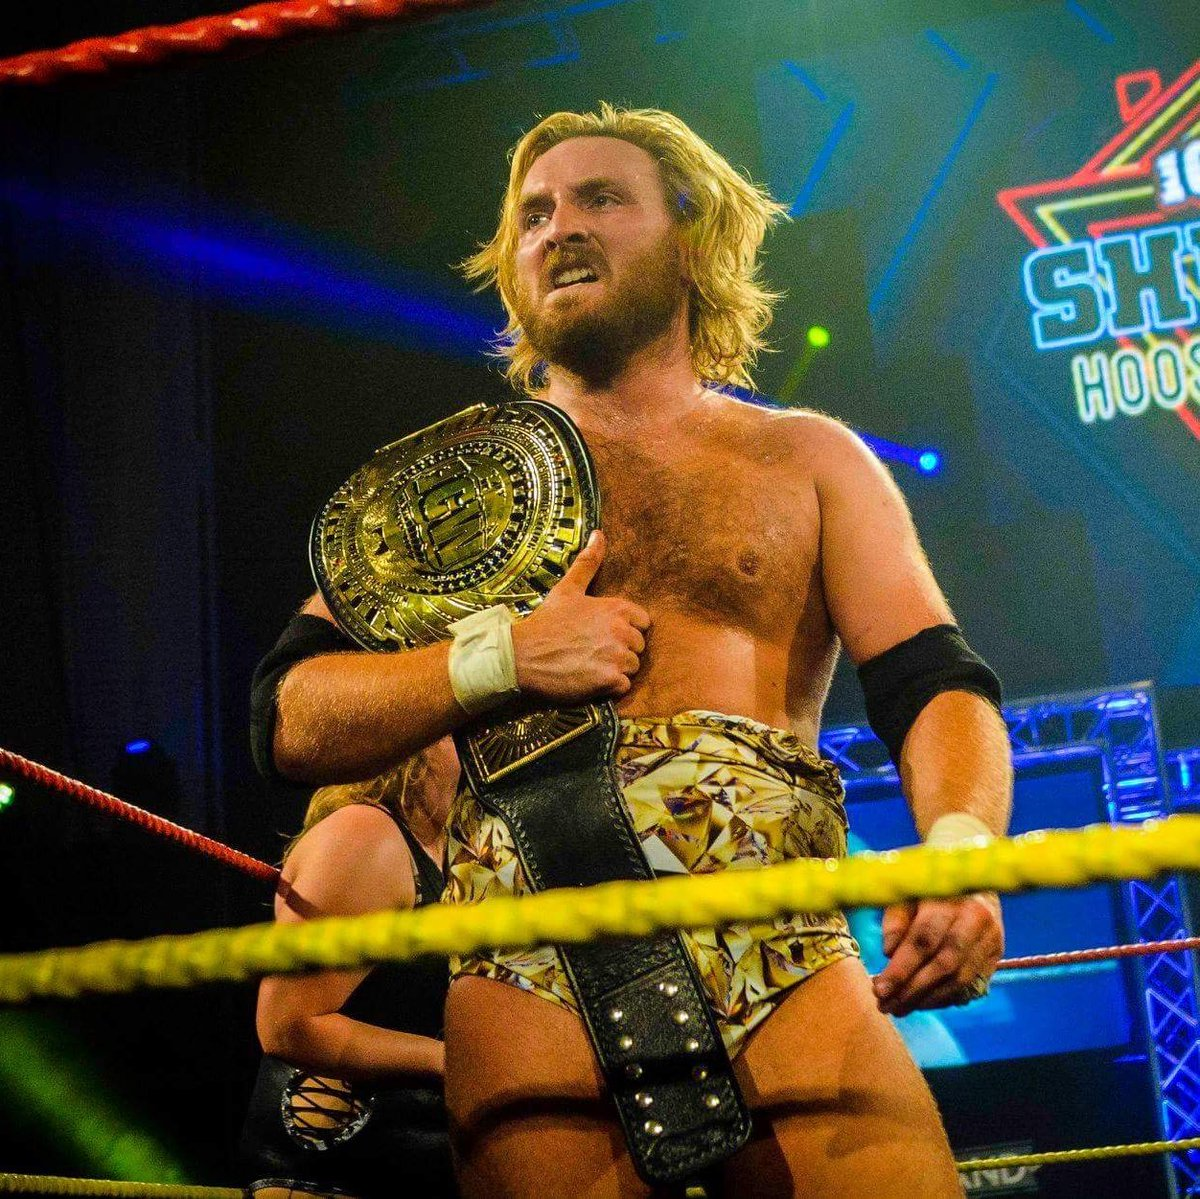 dct after his icw world title